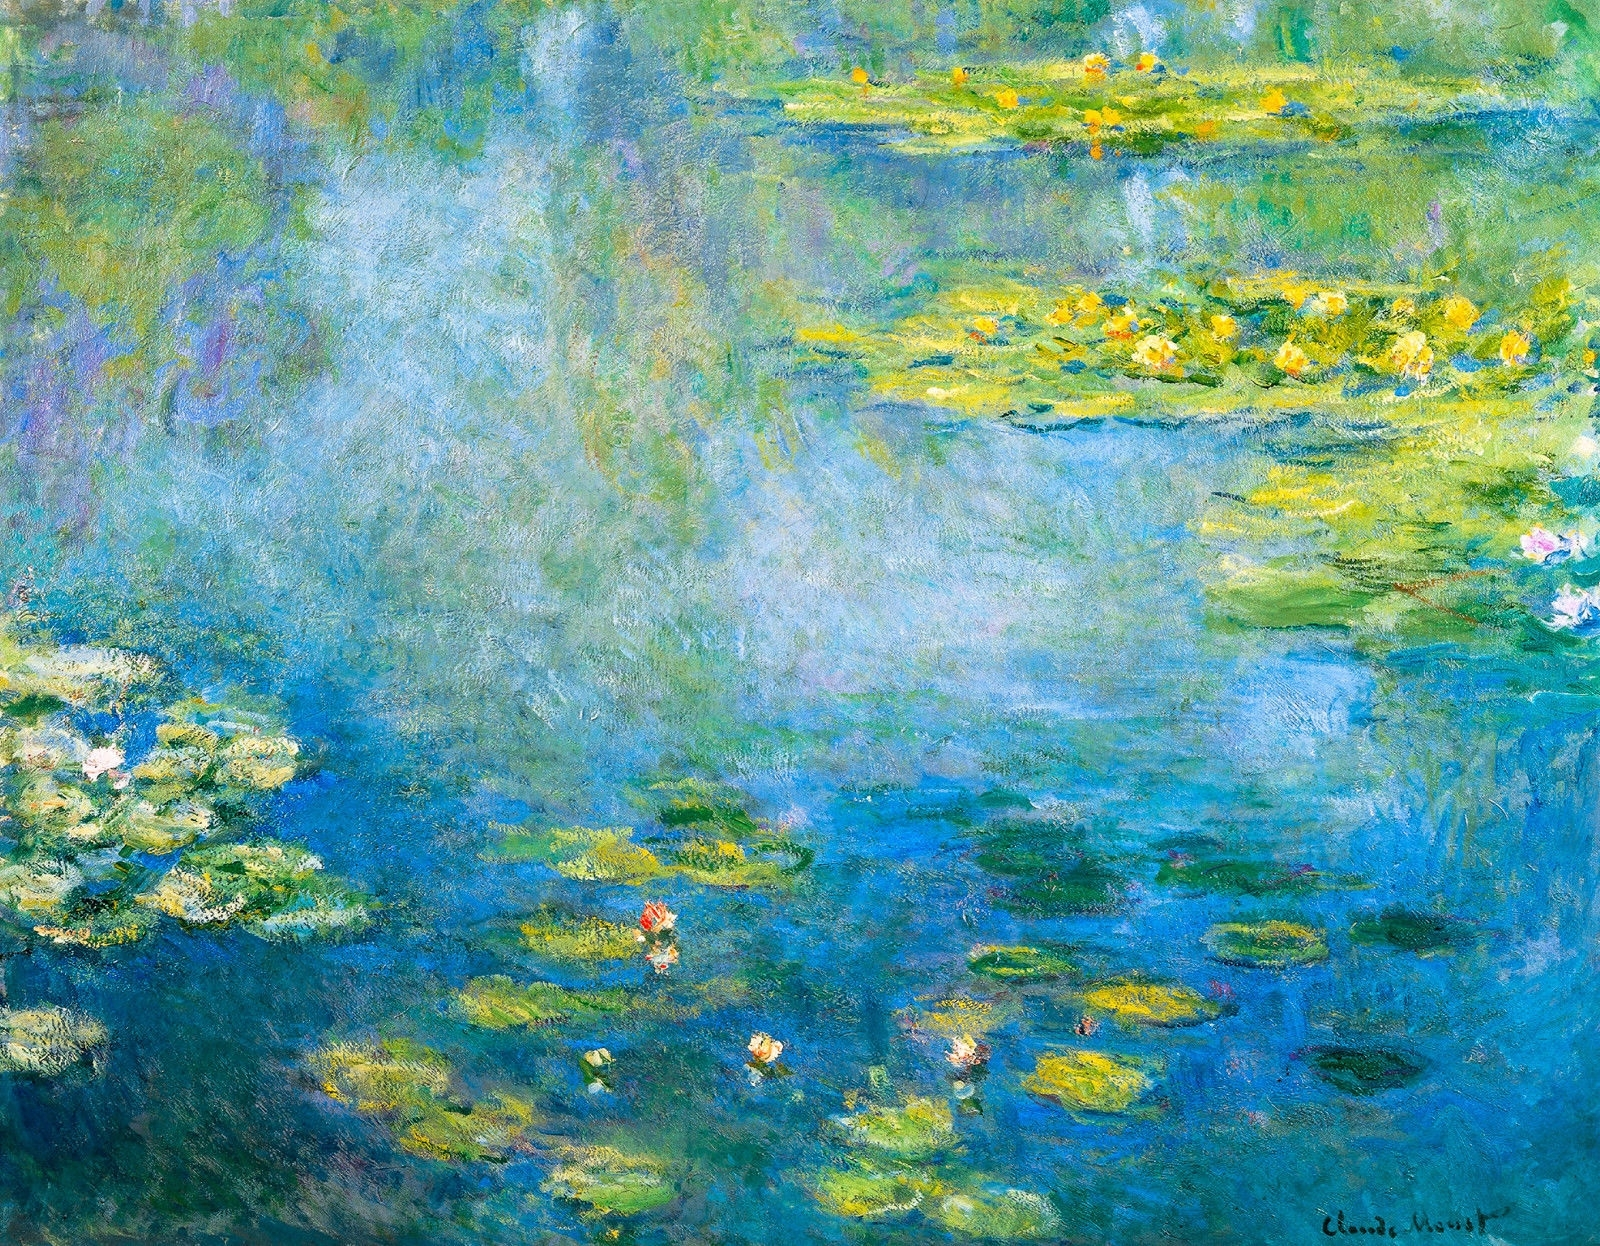 Monet 1906, Waterlilies, Lily Canvas Print, Fade Resistant Hd Regarding Most Recent Monet Canvas Wall Art (View 10 of 15)